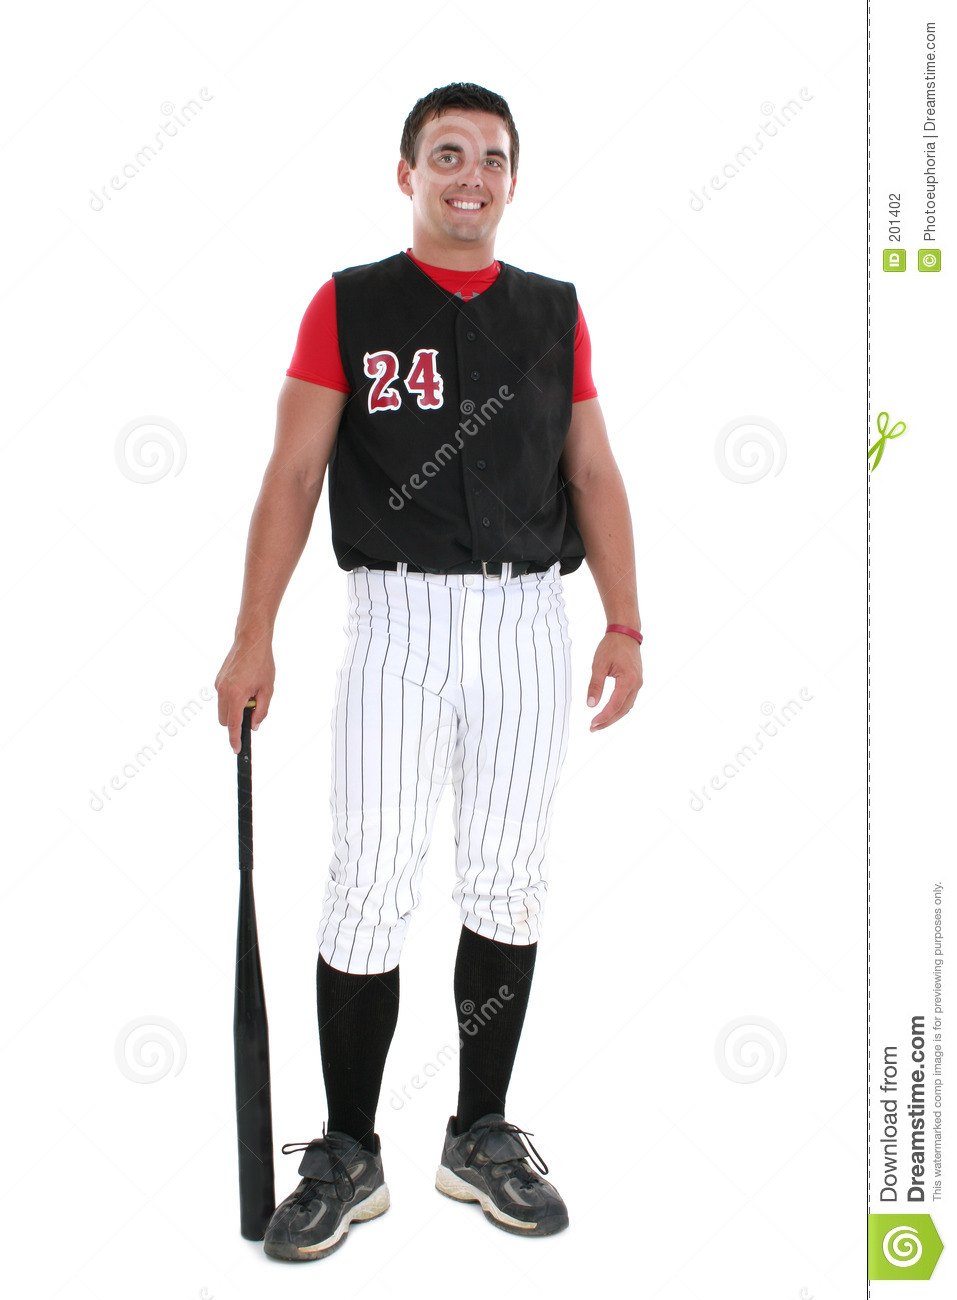 Softball Player In Uniform With Bat Stock Photography - Image: 201402